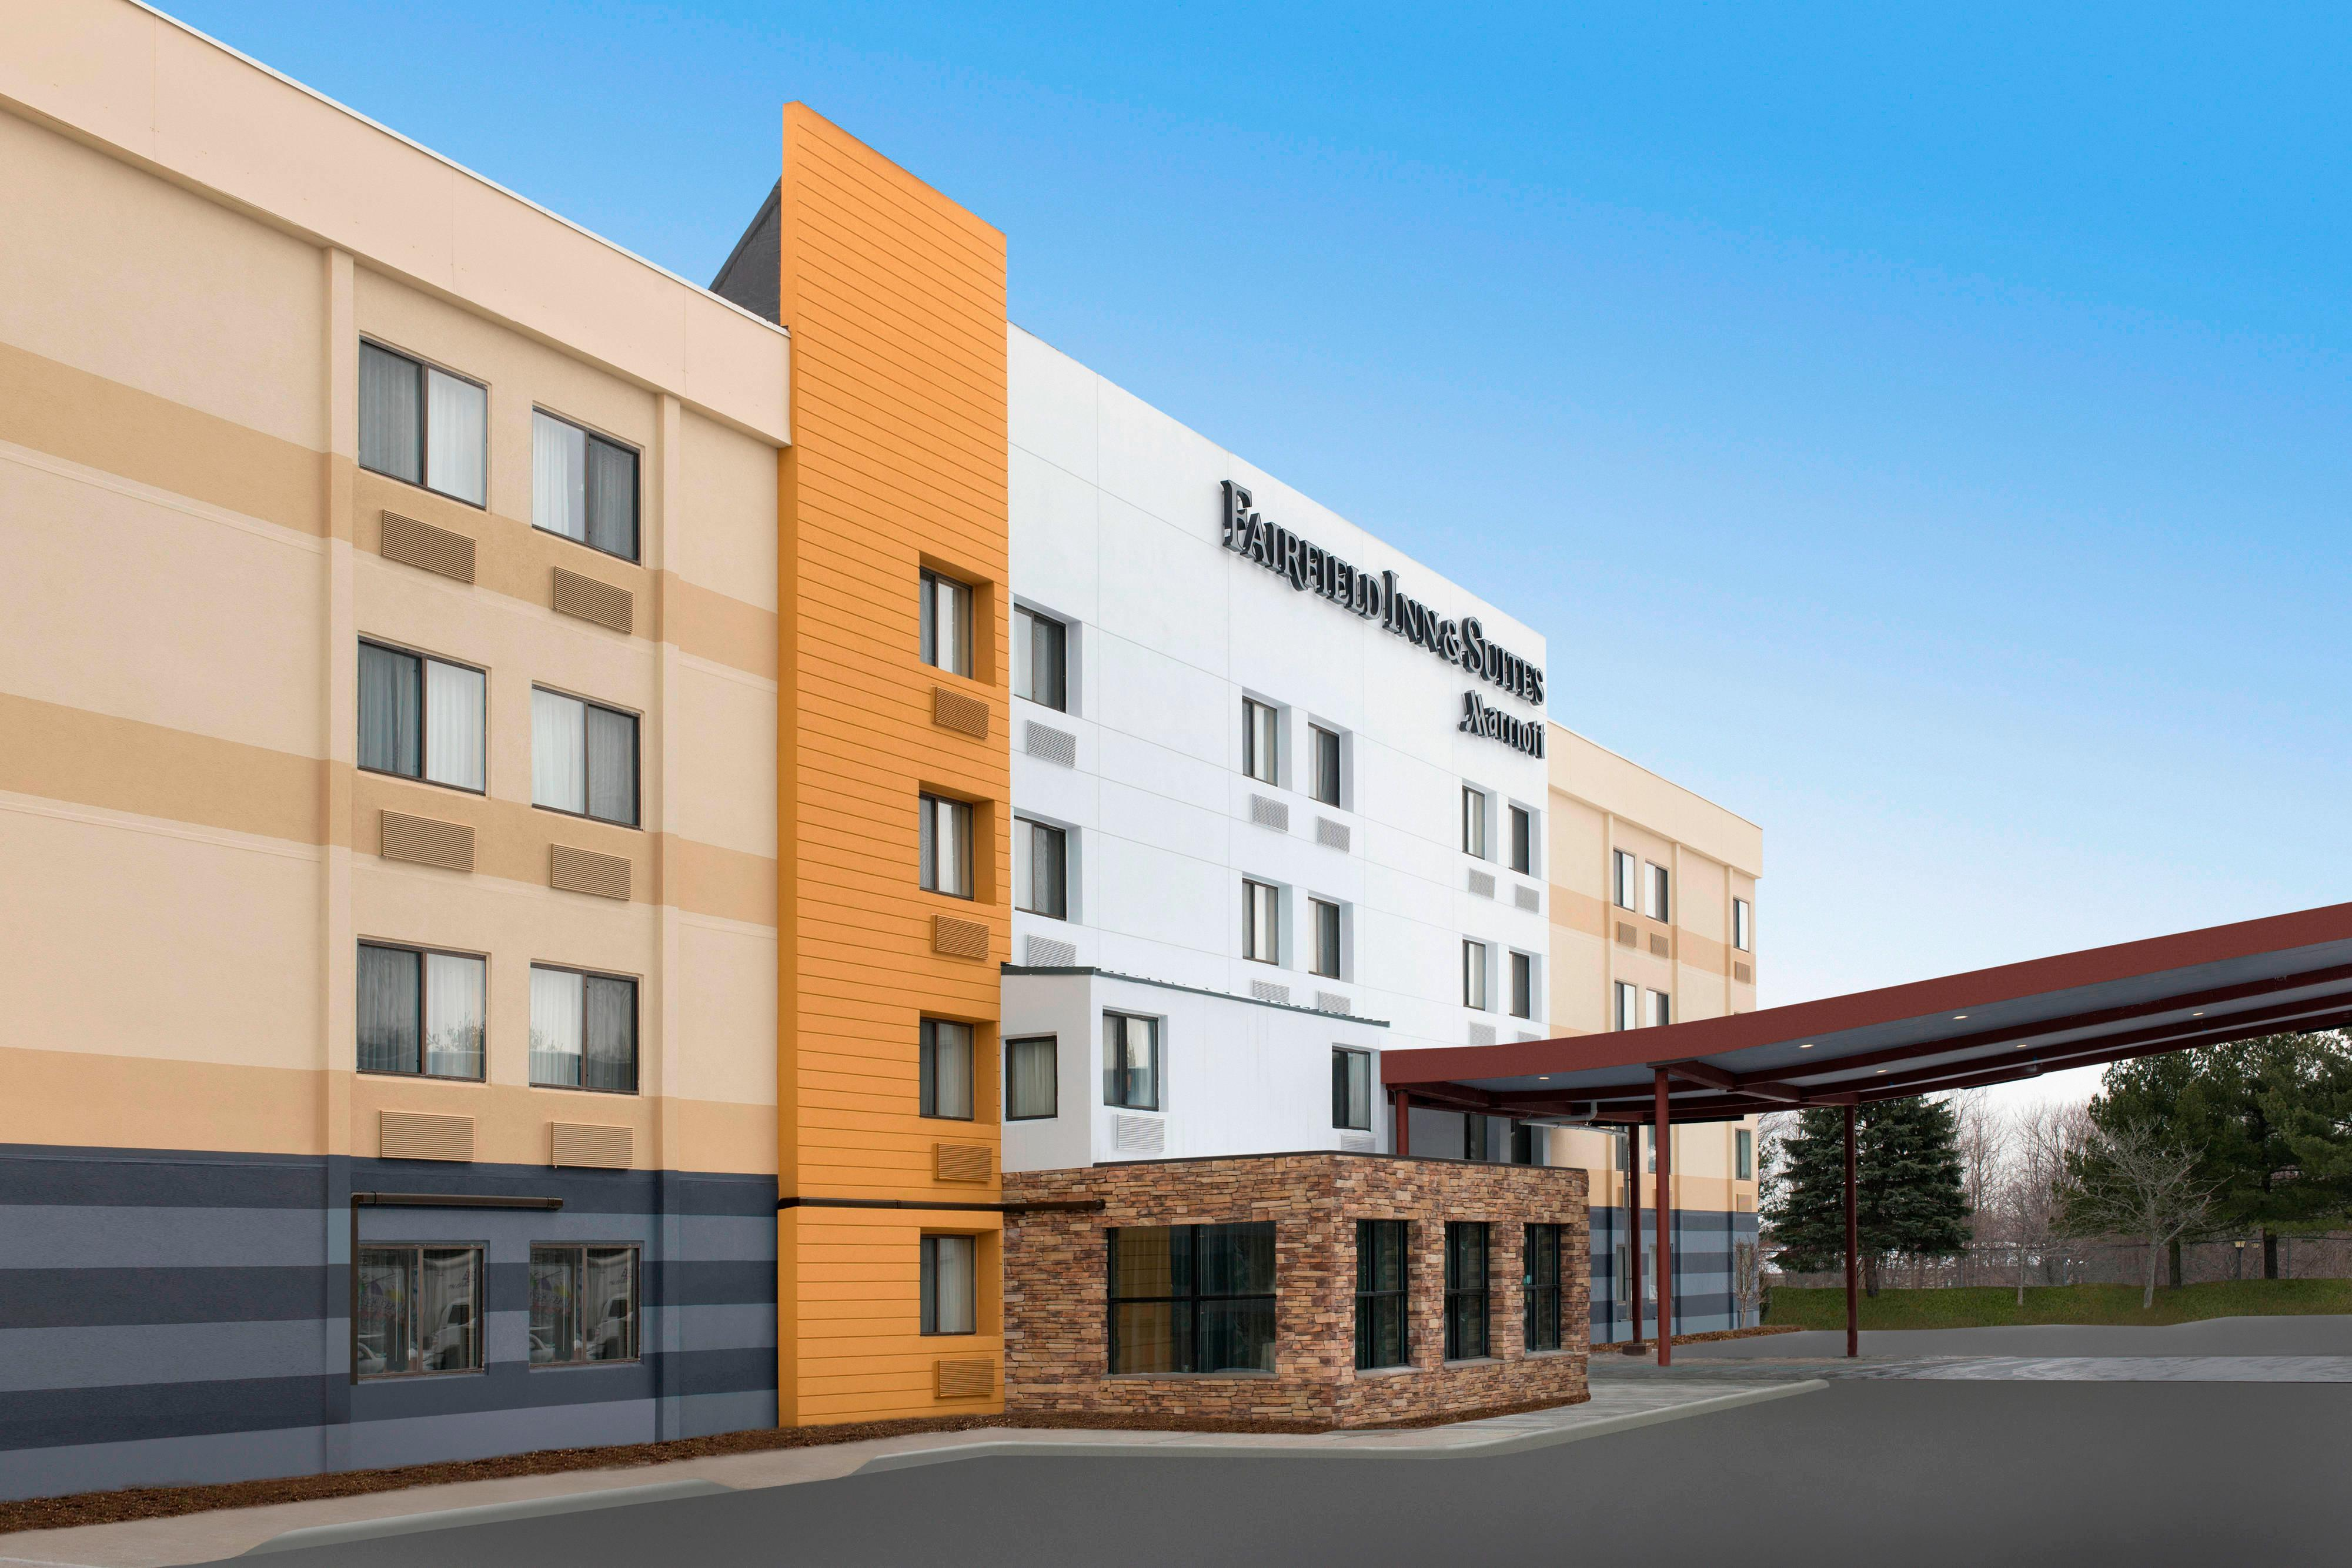 Fairfield Inn By Marriott Albany East Greenbush